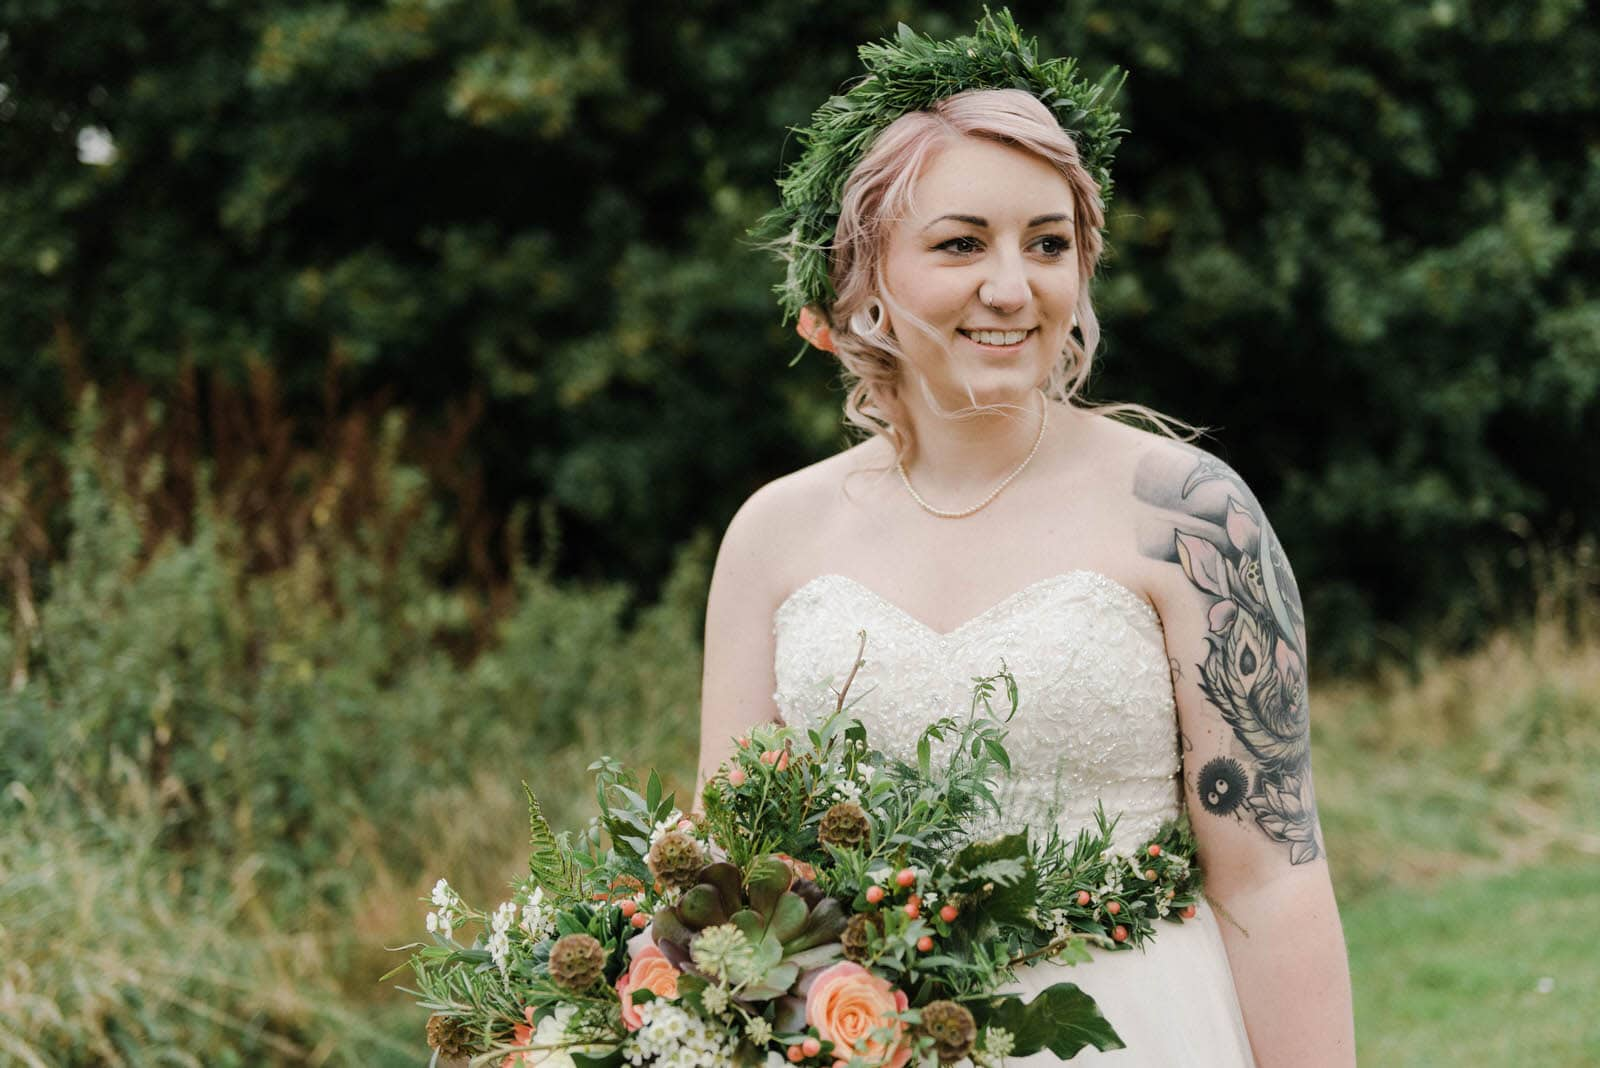 Beautiful portrait of a tattooed bride with pink hair wearing a flower crown and a flower belt